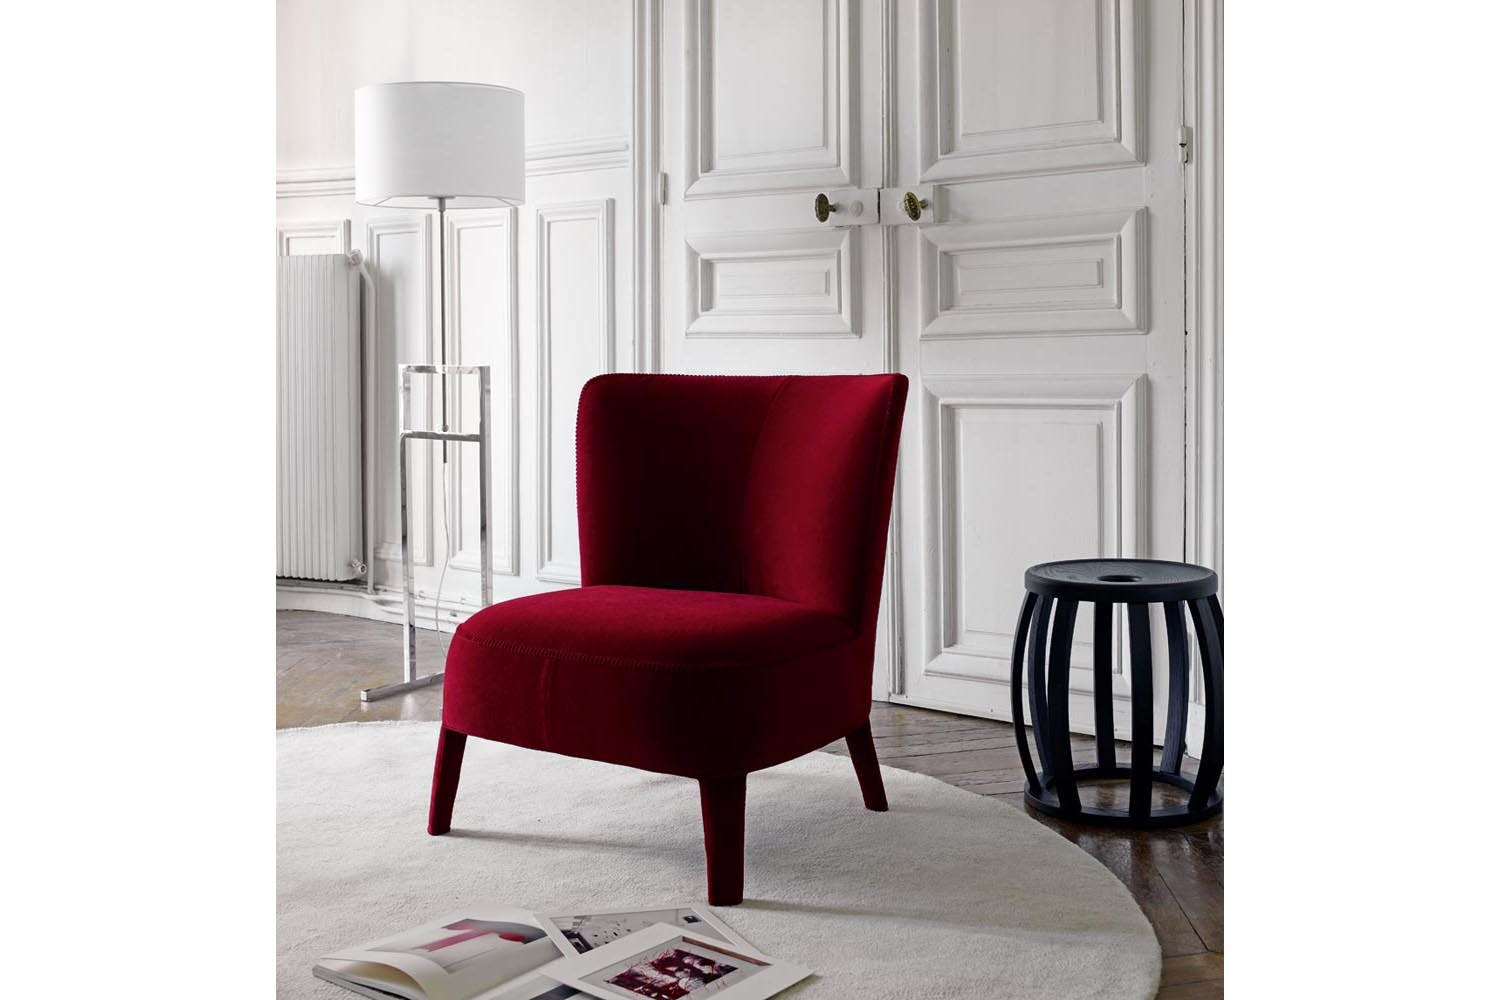 Febo Armchair With High Back By Antonio Citterio For